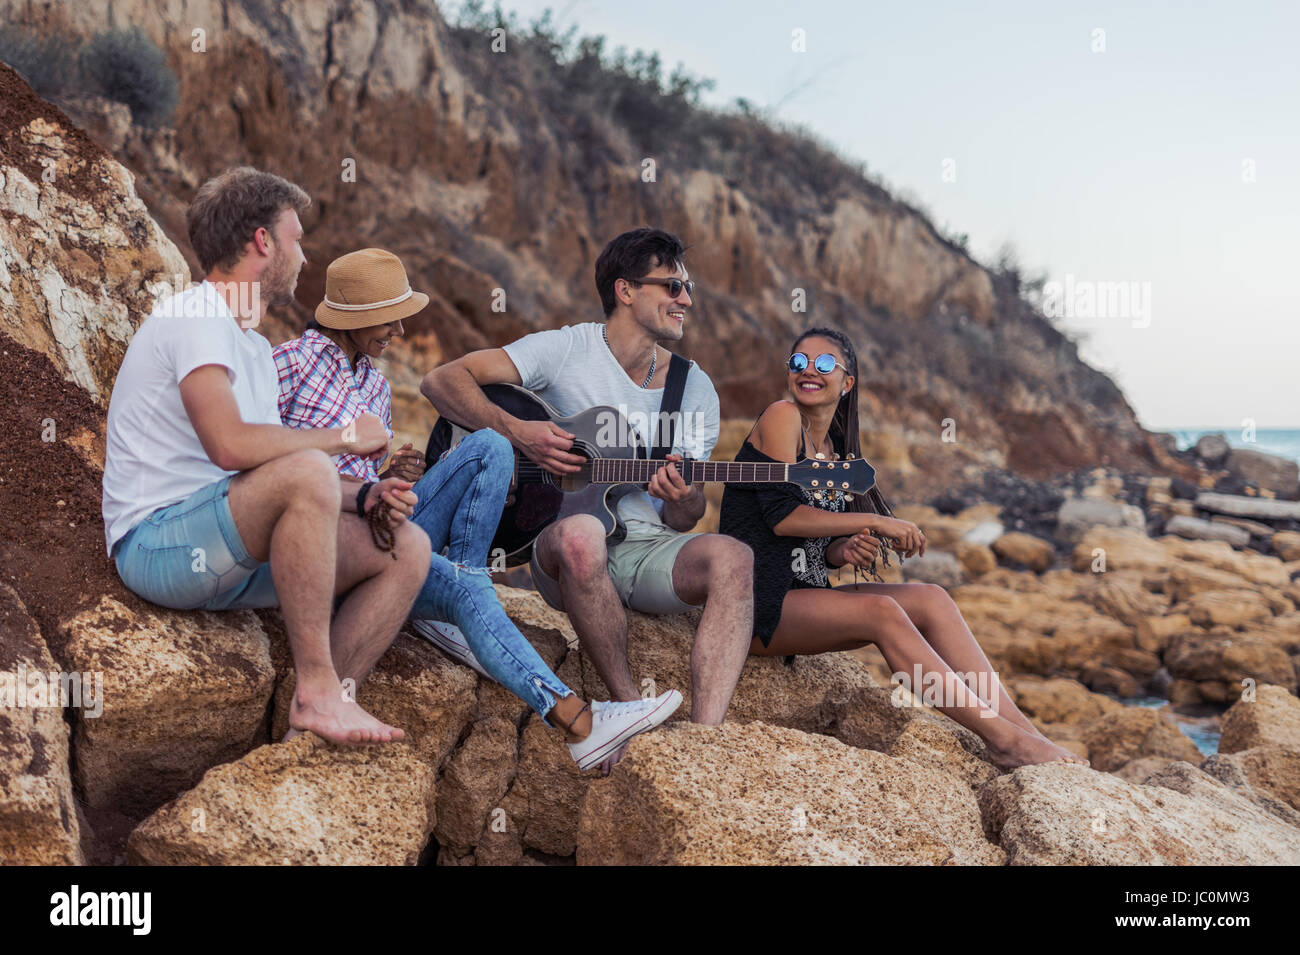 friends sitting on stones on beach. man is playing guitar. - Stock Image